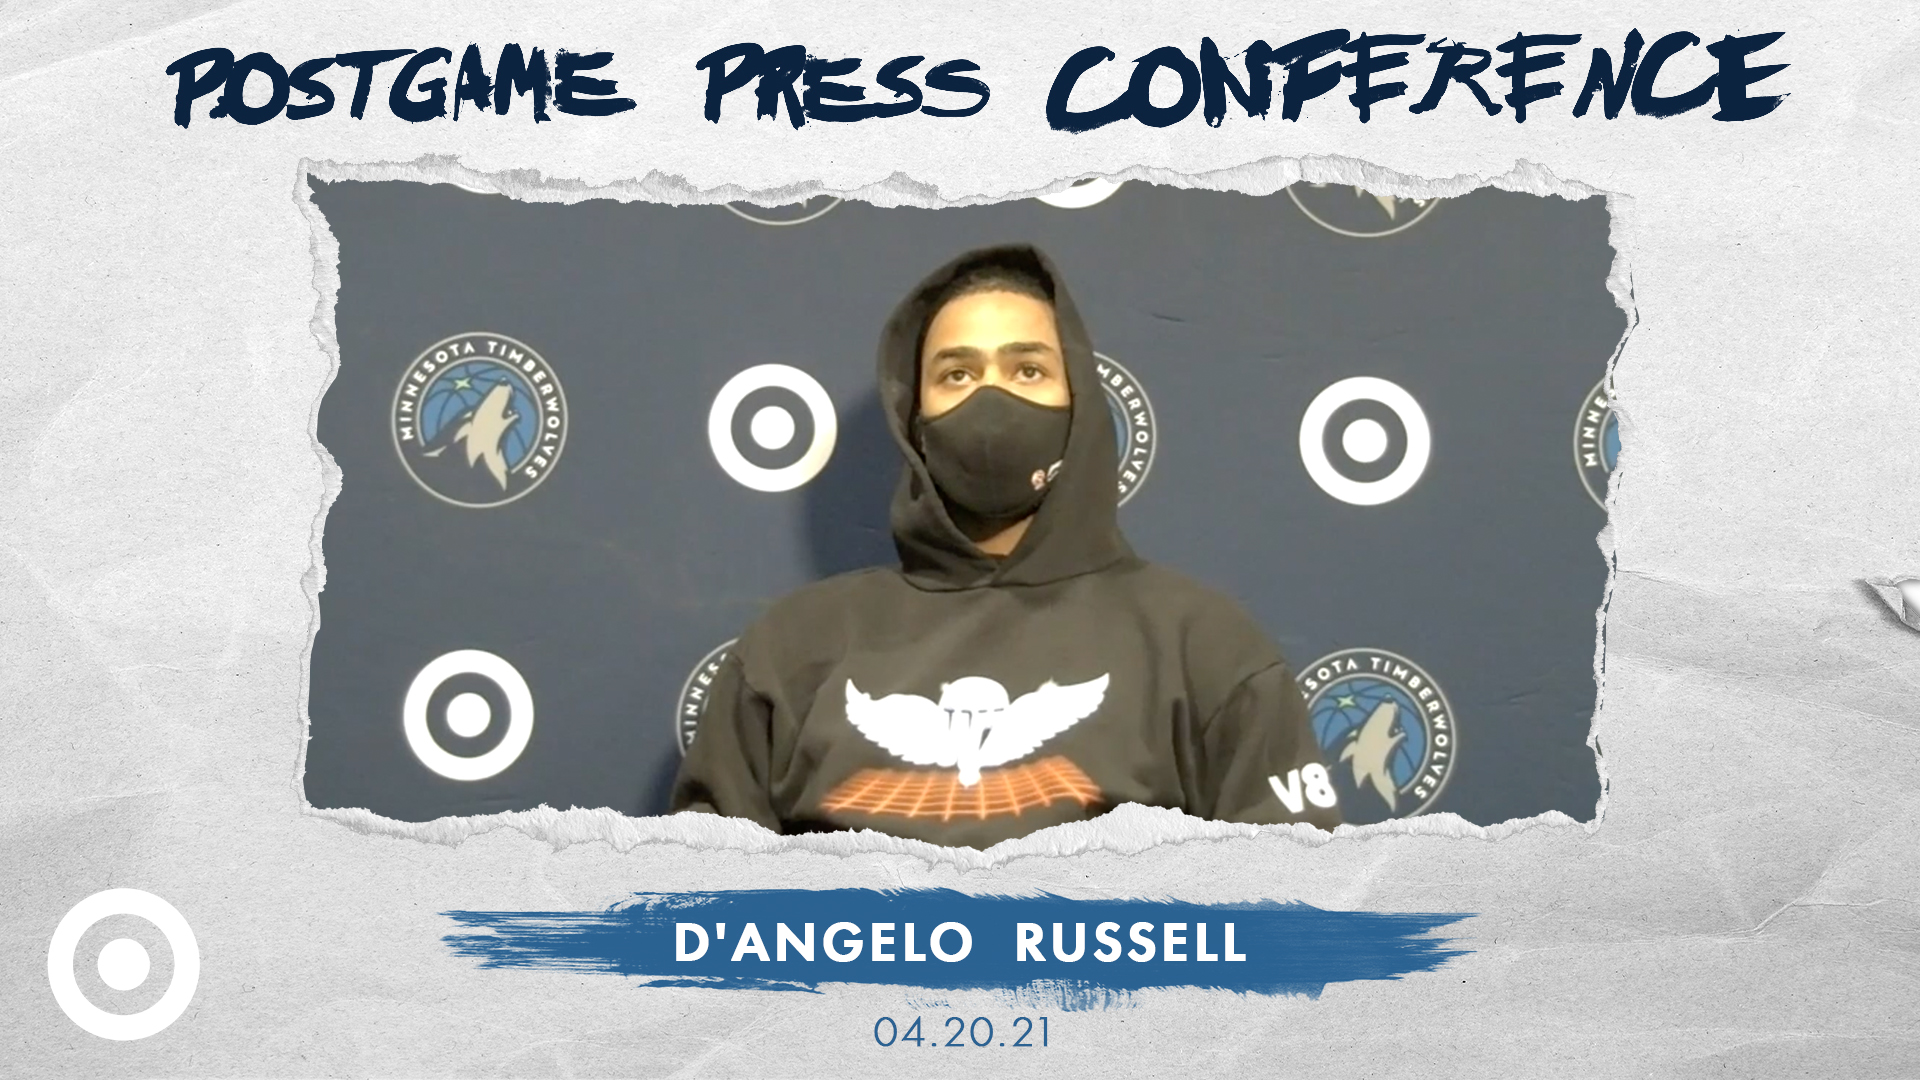 D'Angelo Russell Postgame Press Conference - April 20, 2021